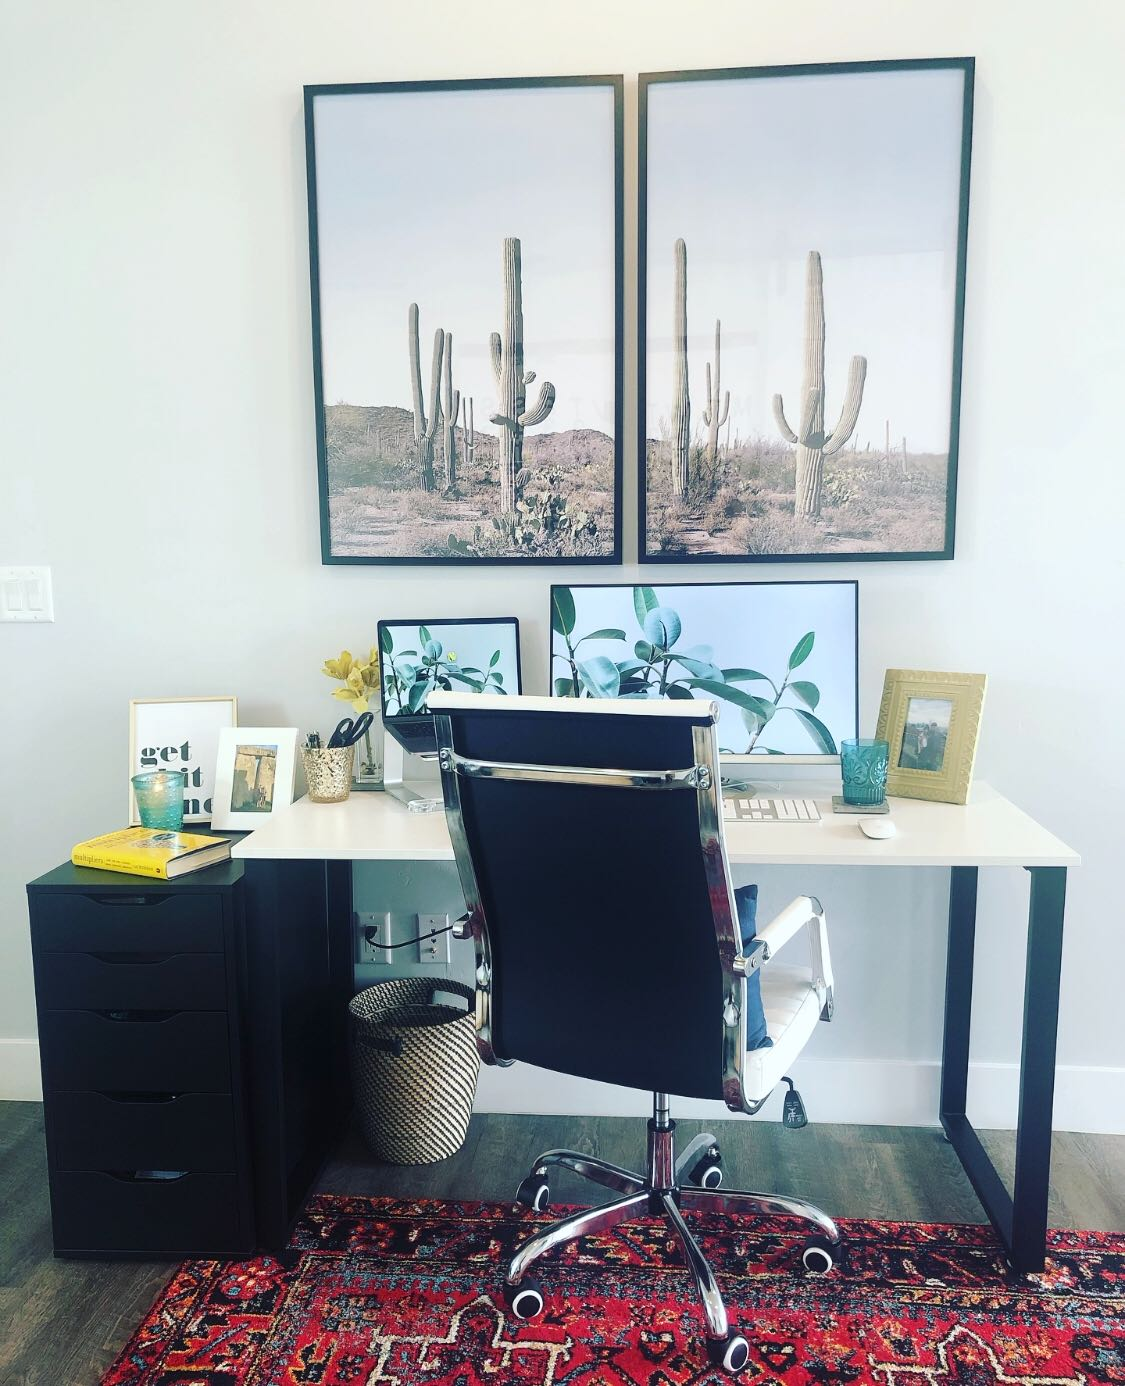 work from home office with cacti picture and desk